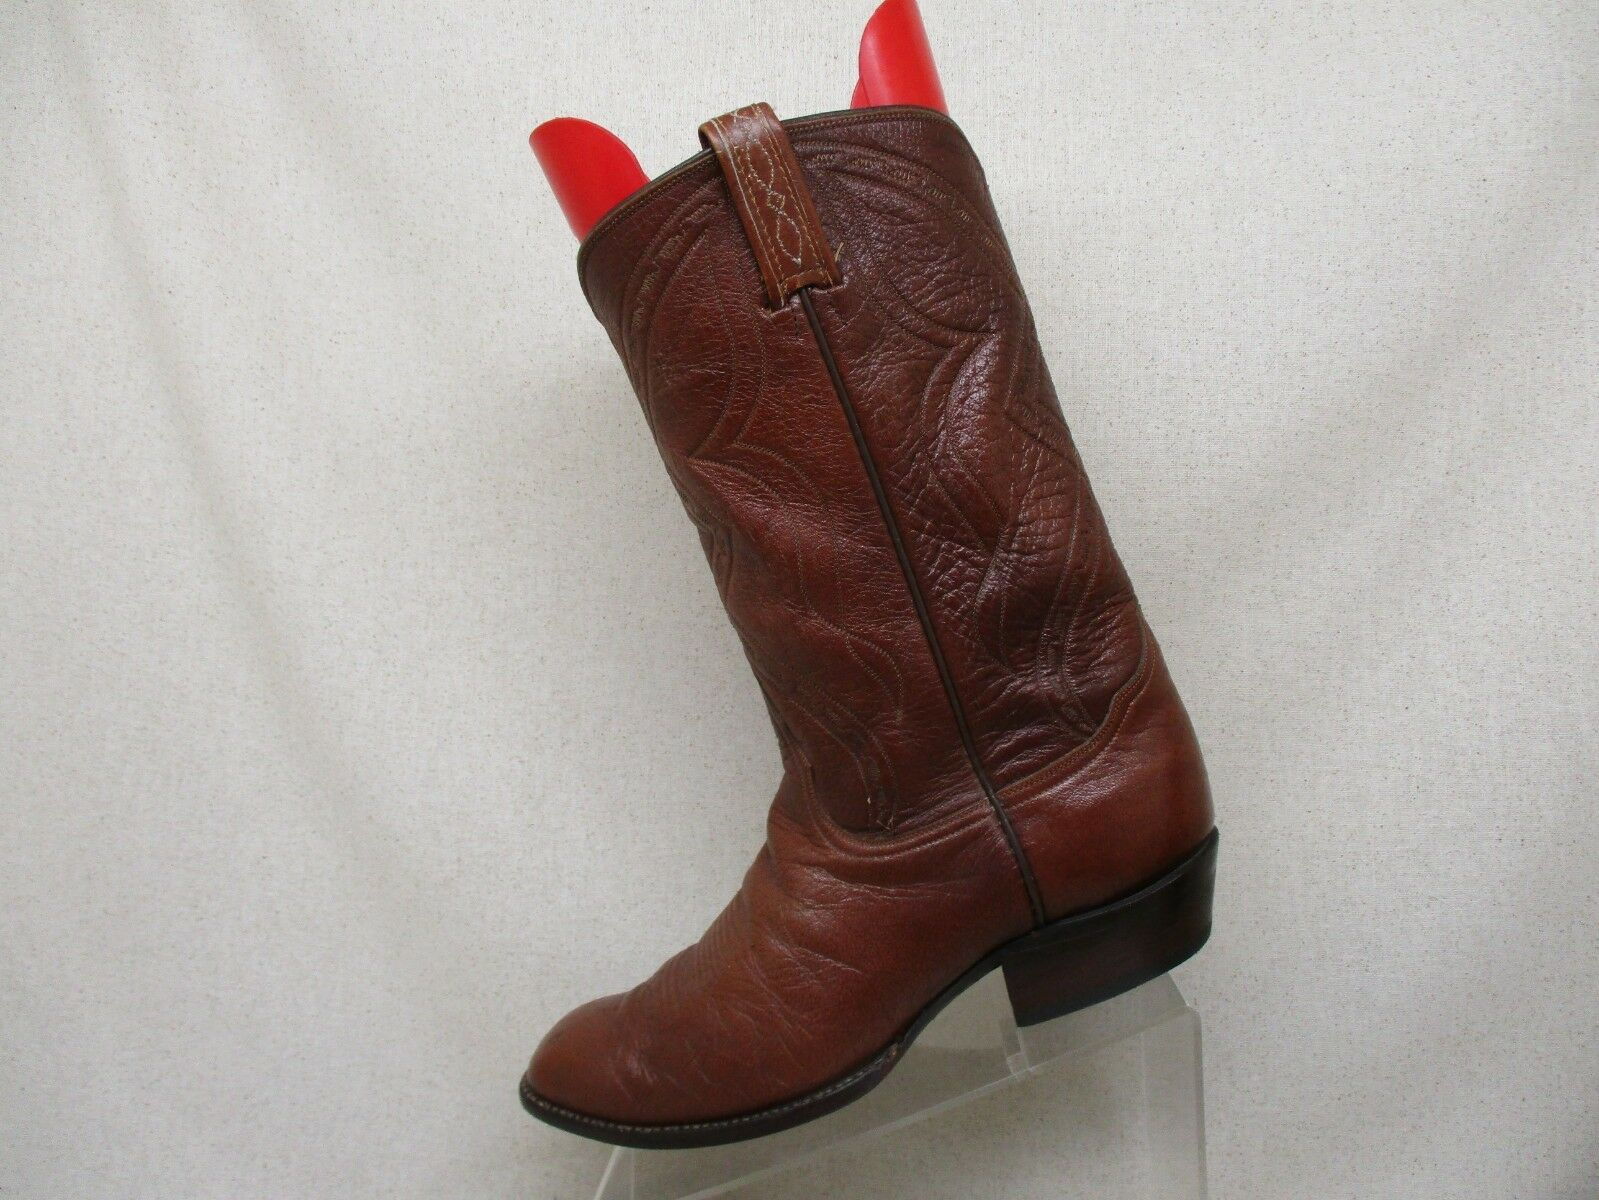 VTG El Rey Tony Lama Brown All Pelle Cowboy Boot Uomo Size 10 D Style 63602